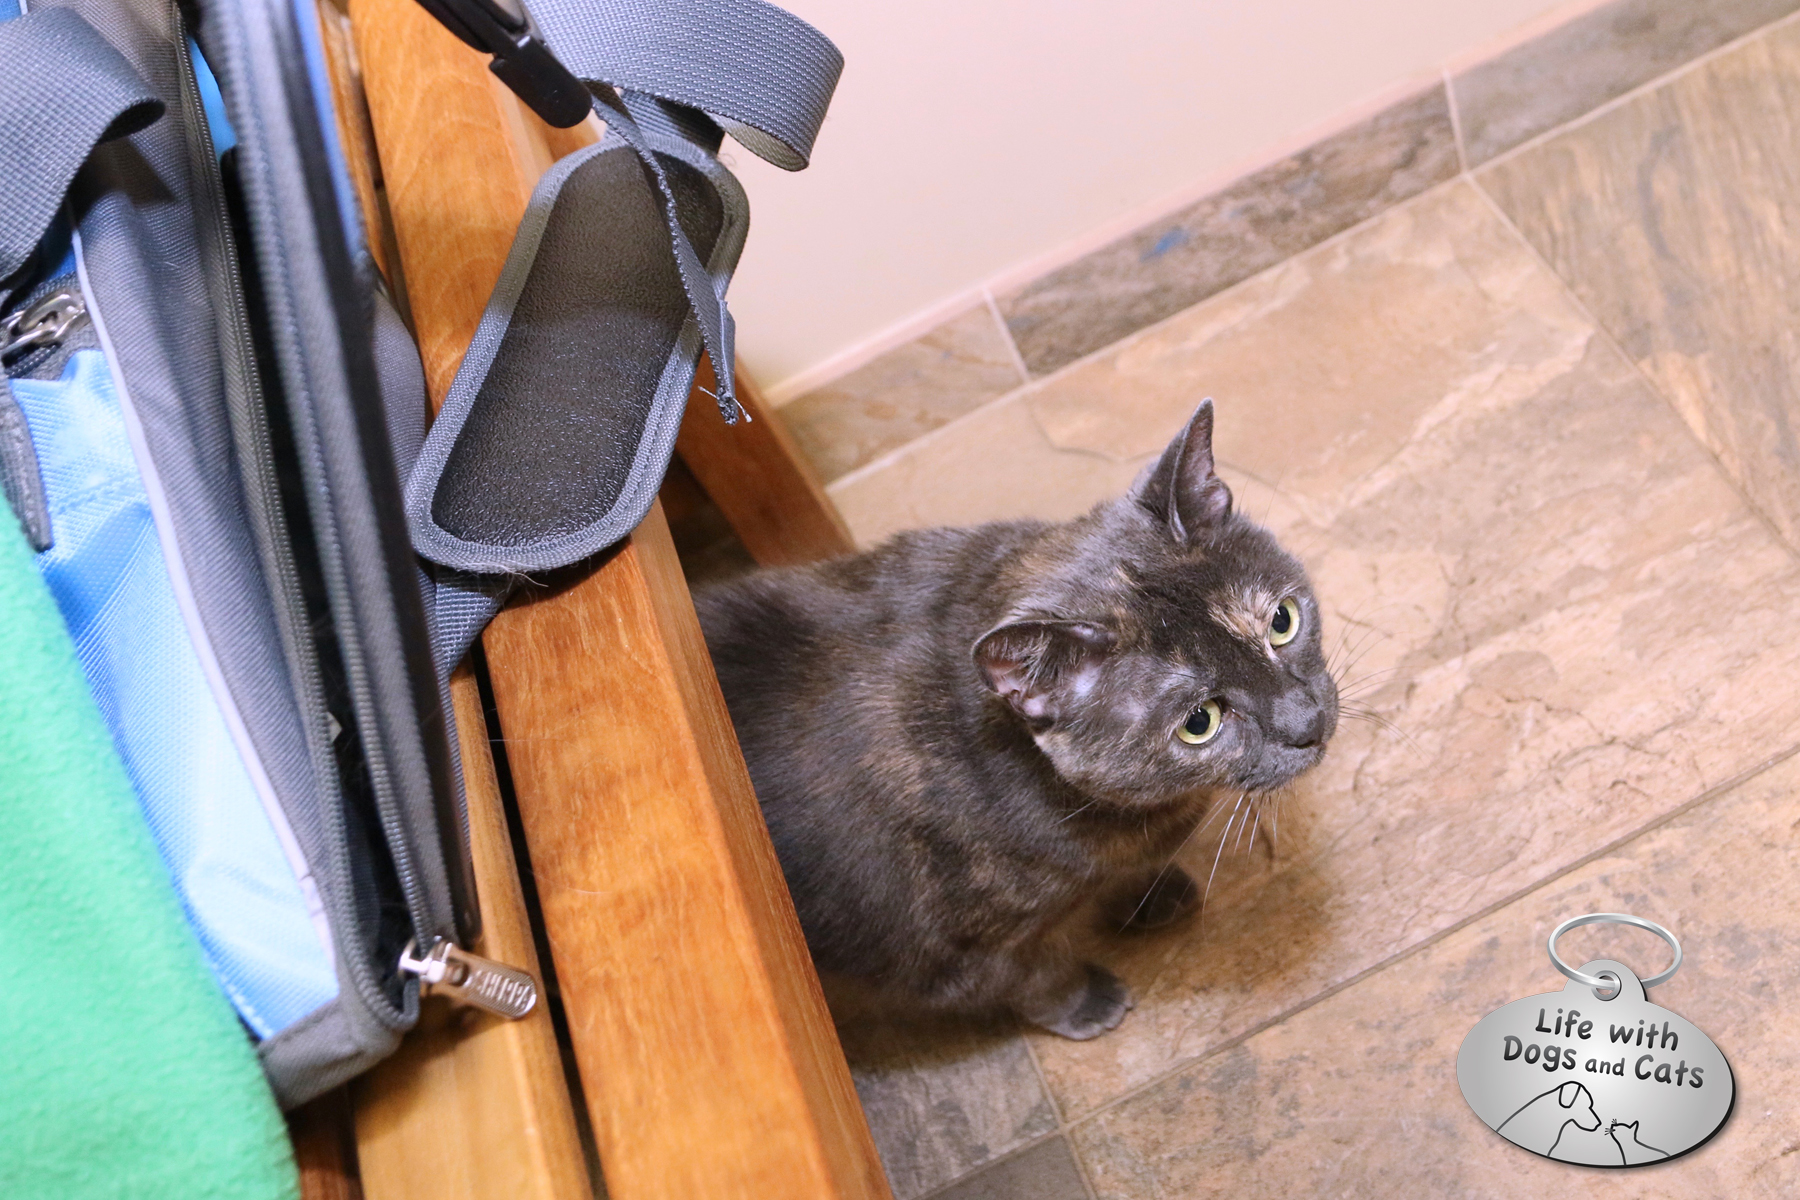 Athena at the vet: Take Your Cat to the Vet Day #Cat2VetDay